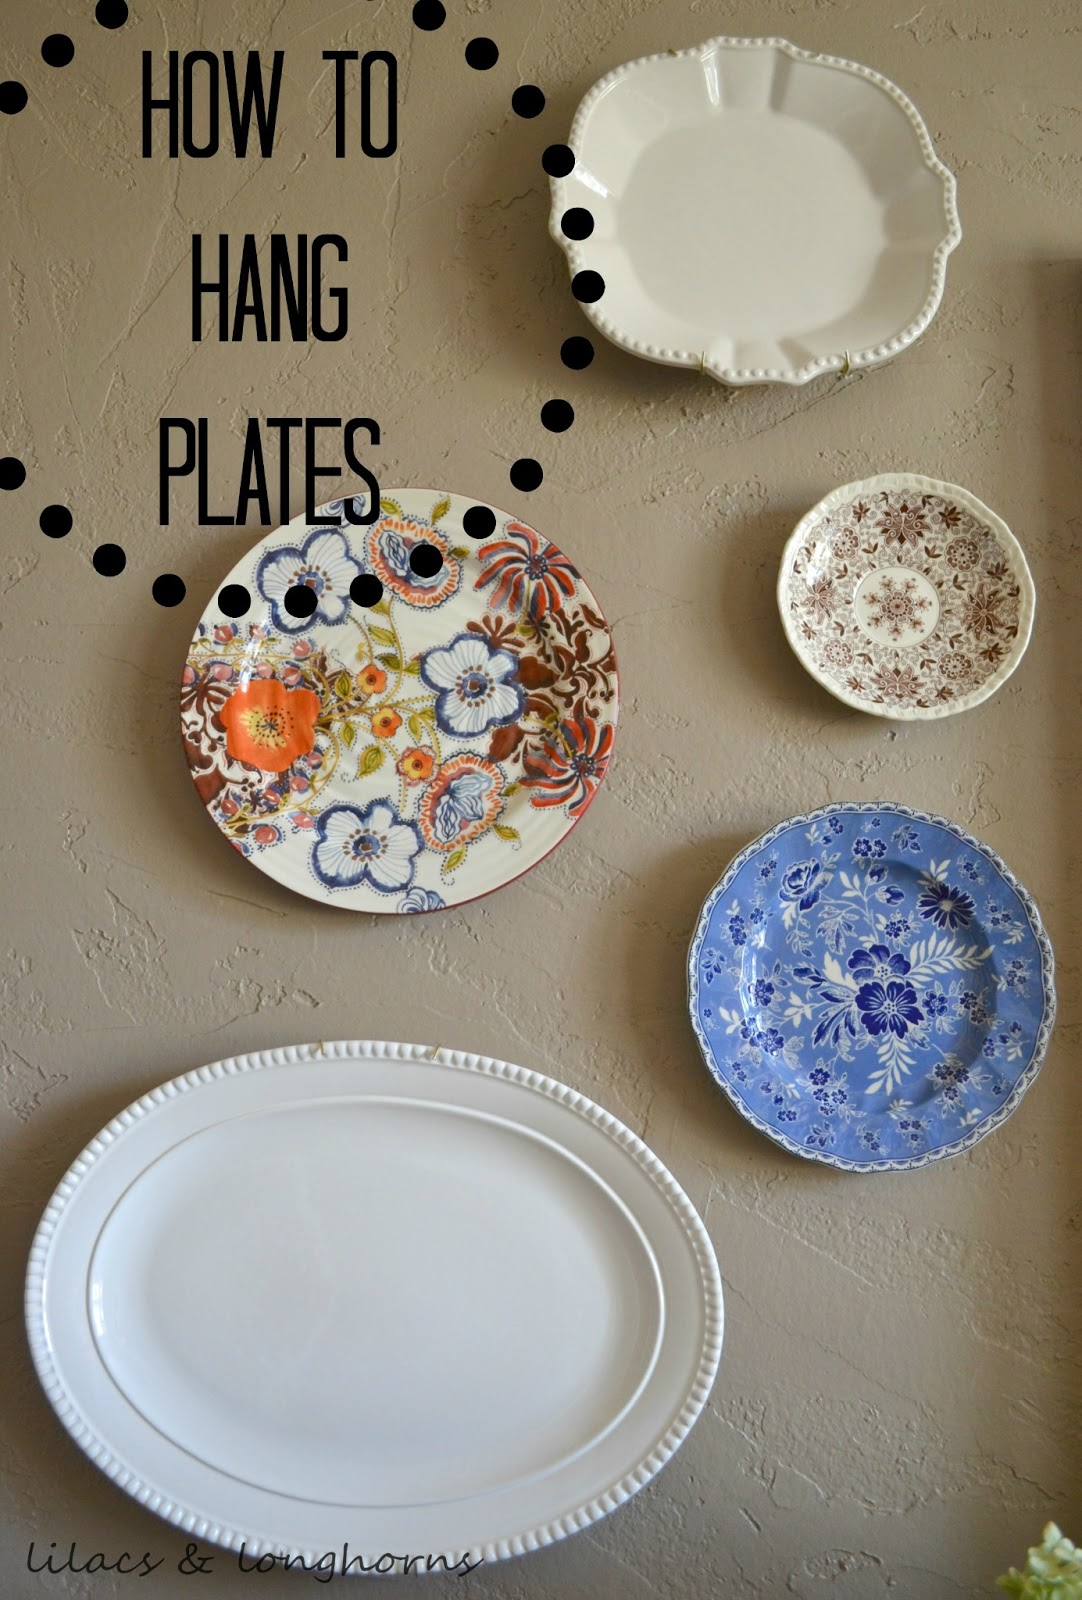 How to Hang Plates : plate wall hanger - pezcame.com